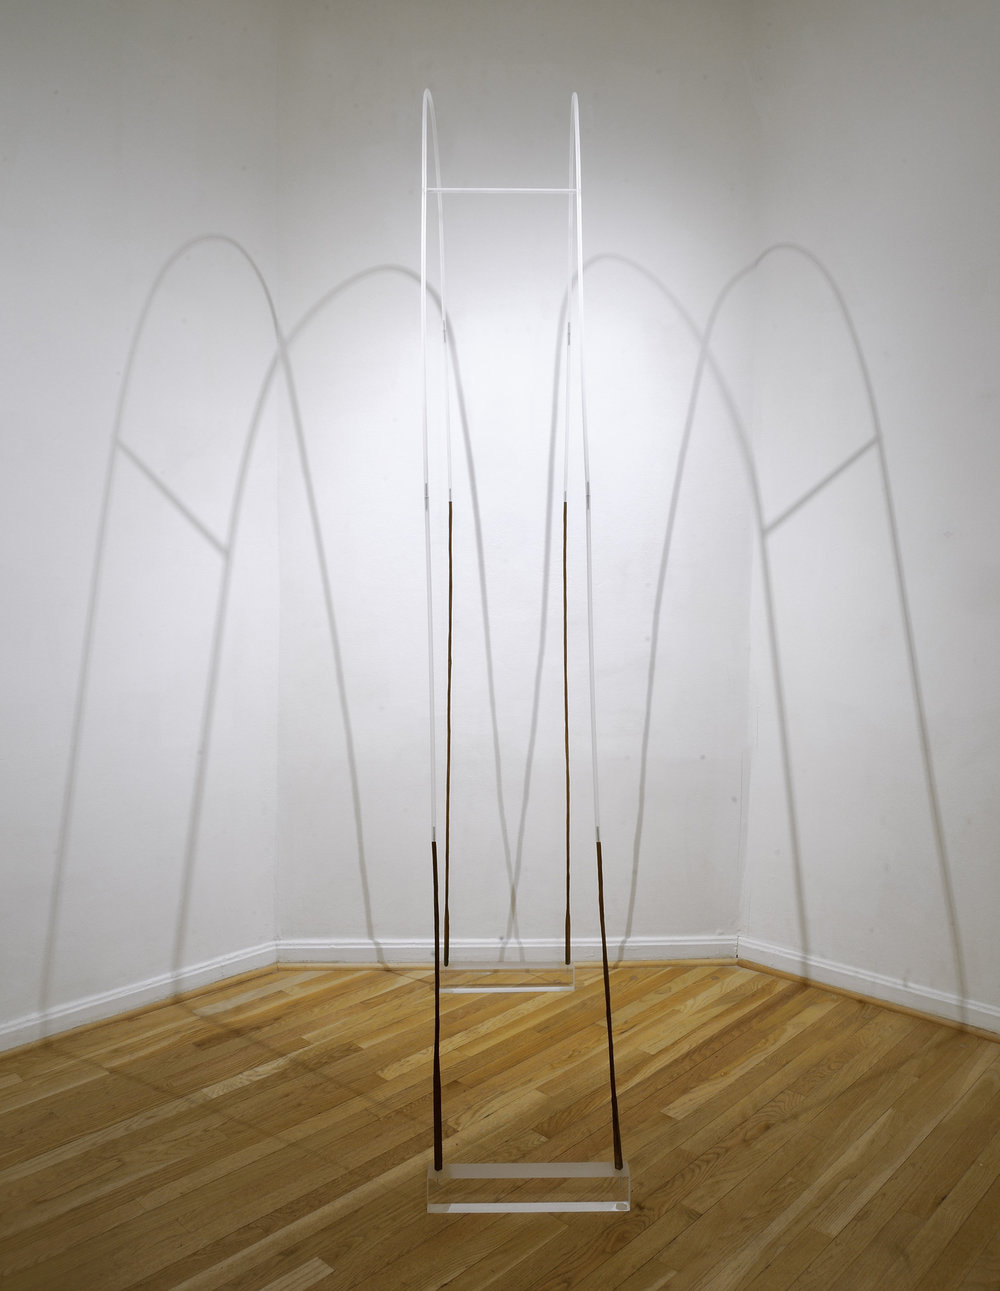 Reach , 2018, wood, plexiglass and metal pins, 96 x 16 1/2 x 42 in. (photo: Grey Staley)